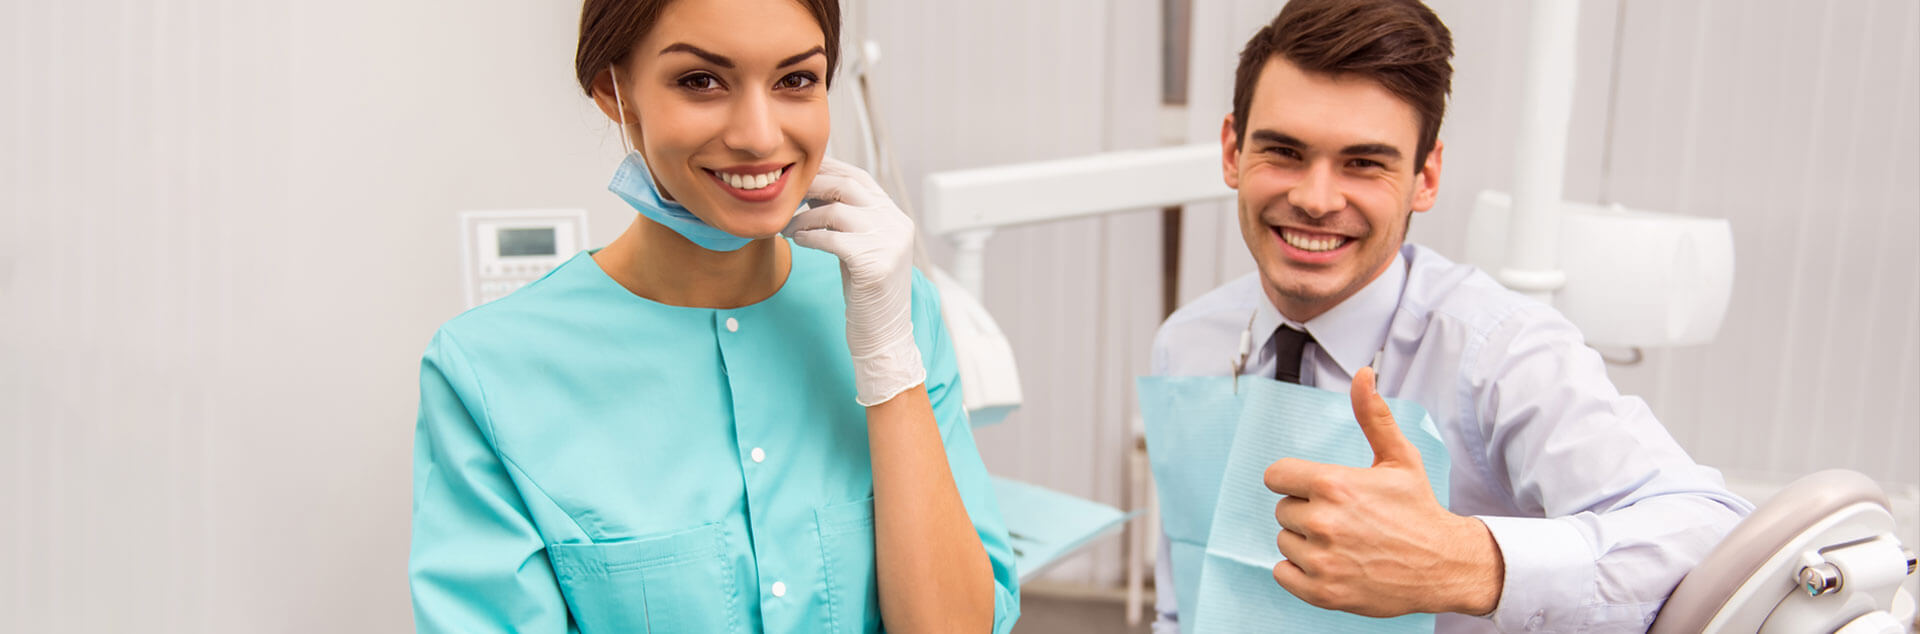 Dental assistant smiling and patient smiling while showing thumbs up